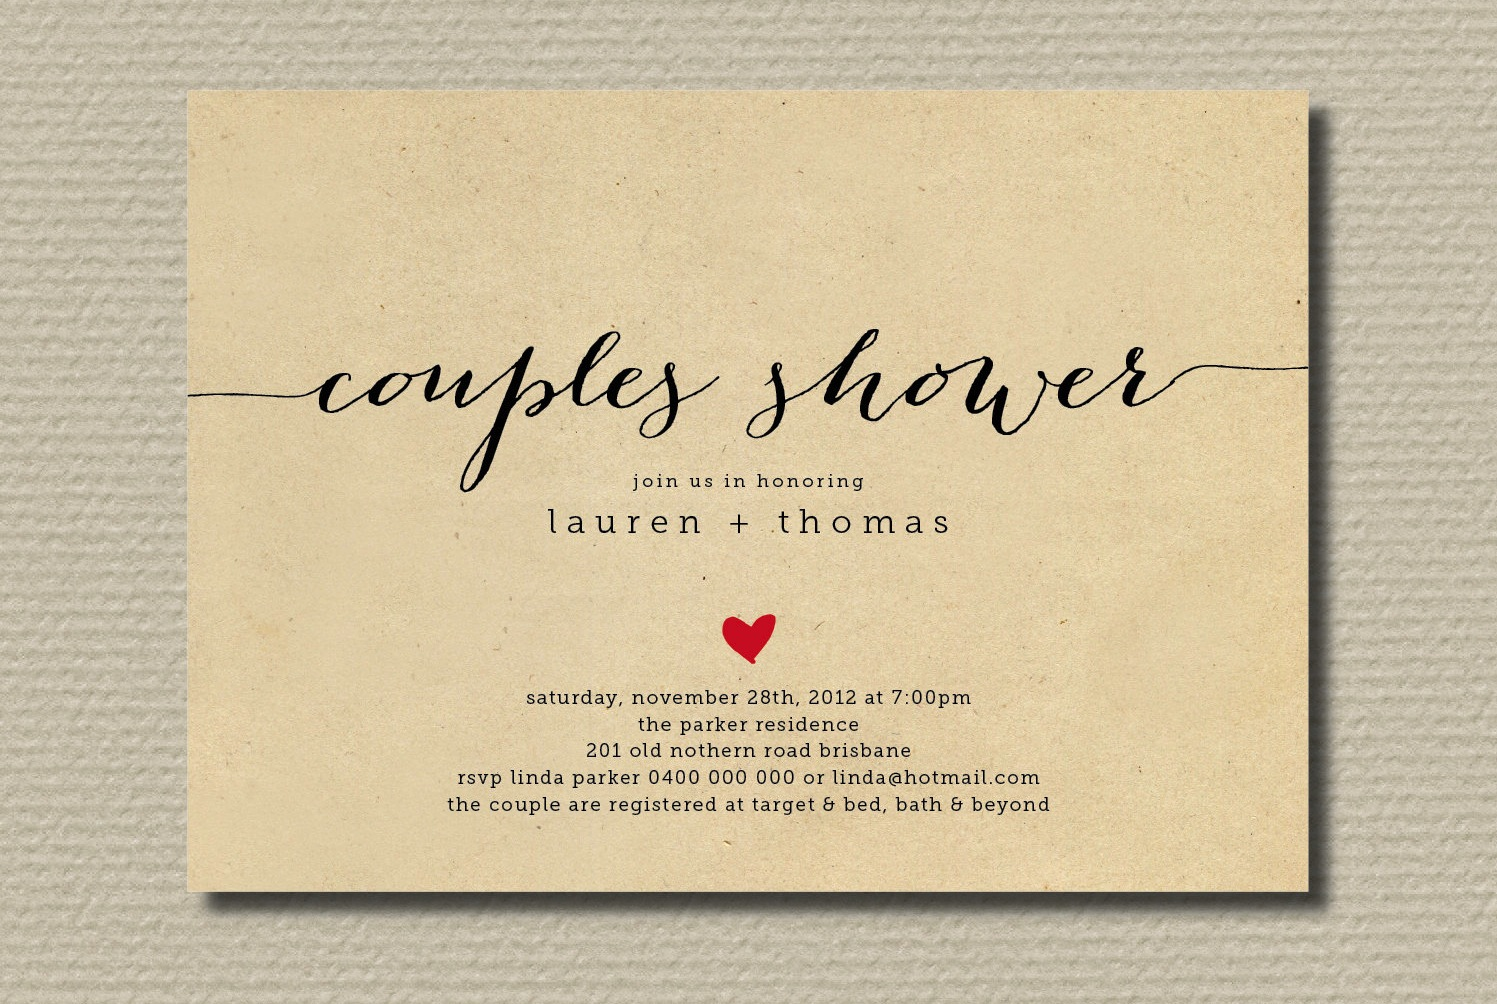 Bridal shower invitations bridal shower invitations for for Invitations for wedding shower